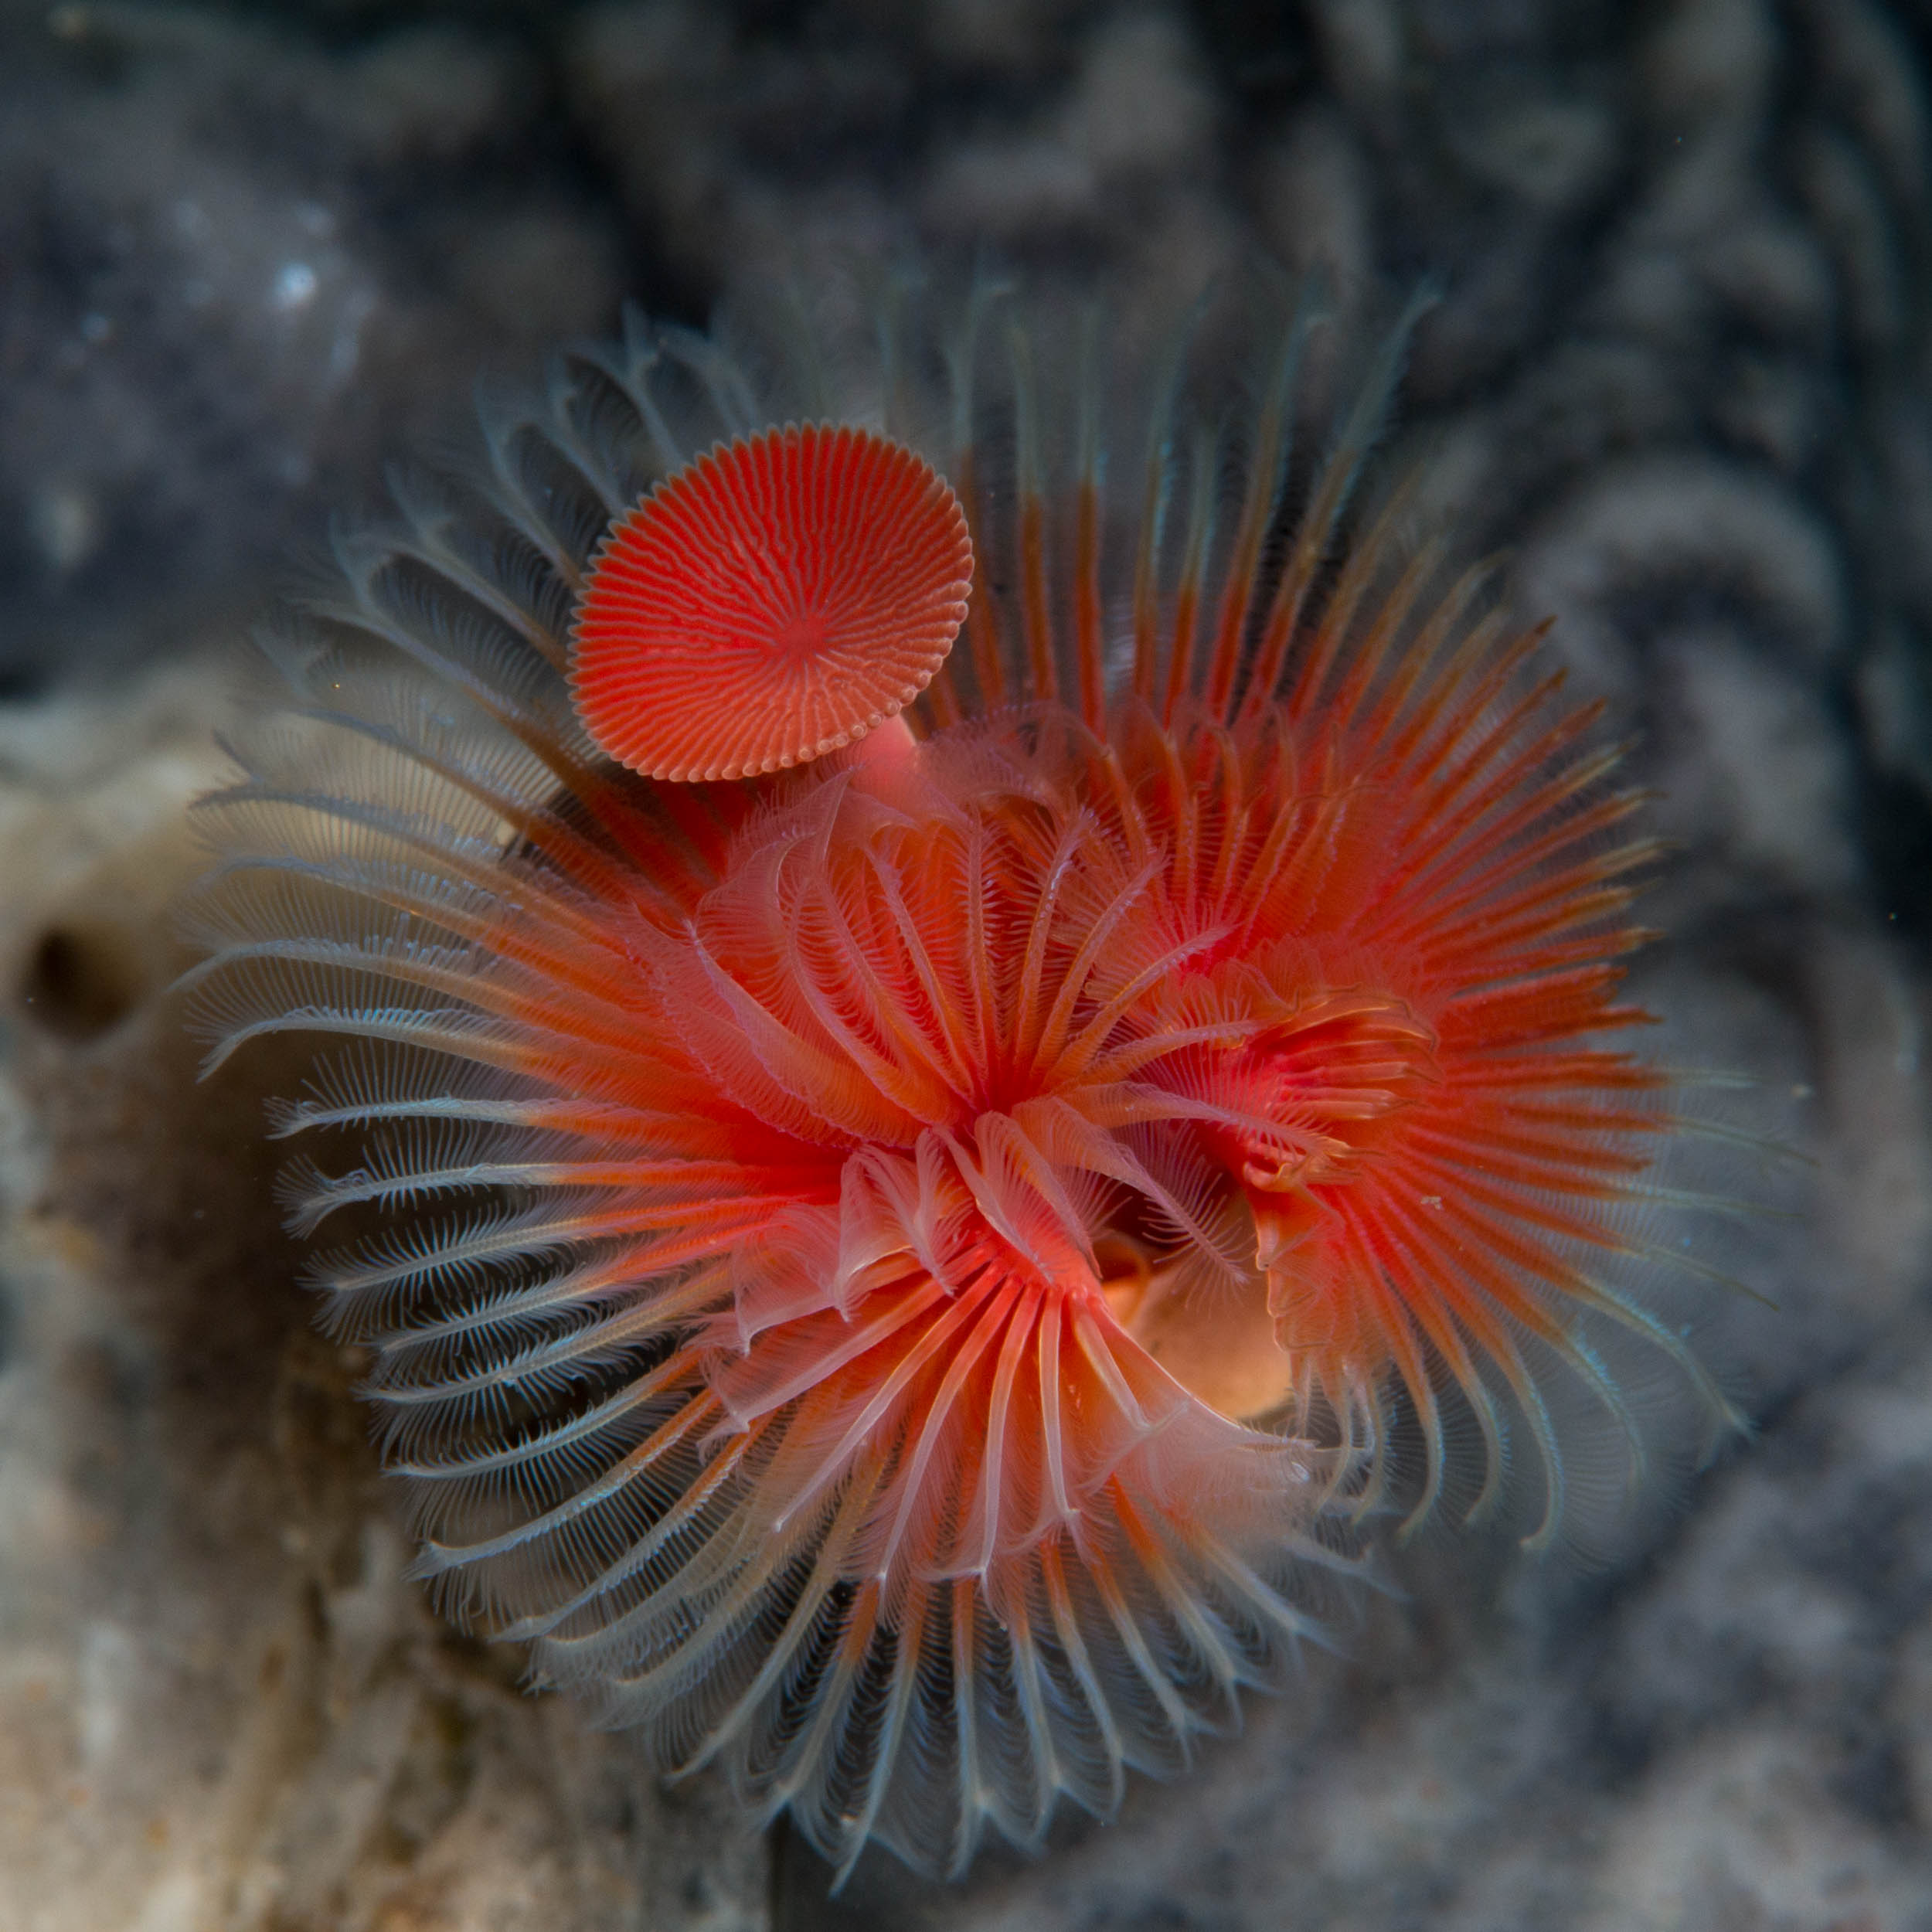 Tube worm (Serpula sp.)